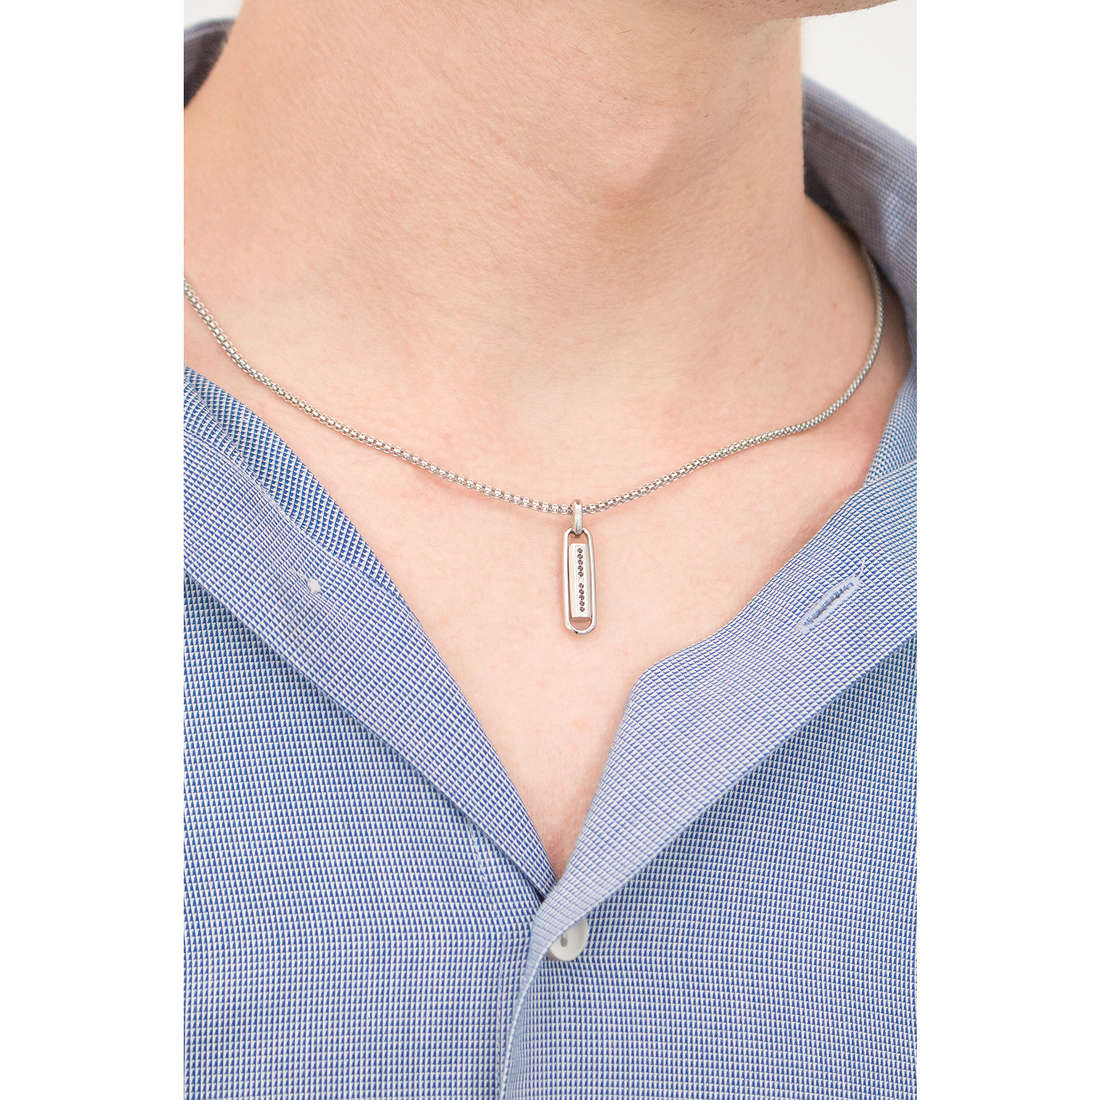 Comete necklaces Lingotto man UGL 363 indosso